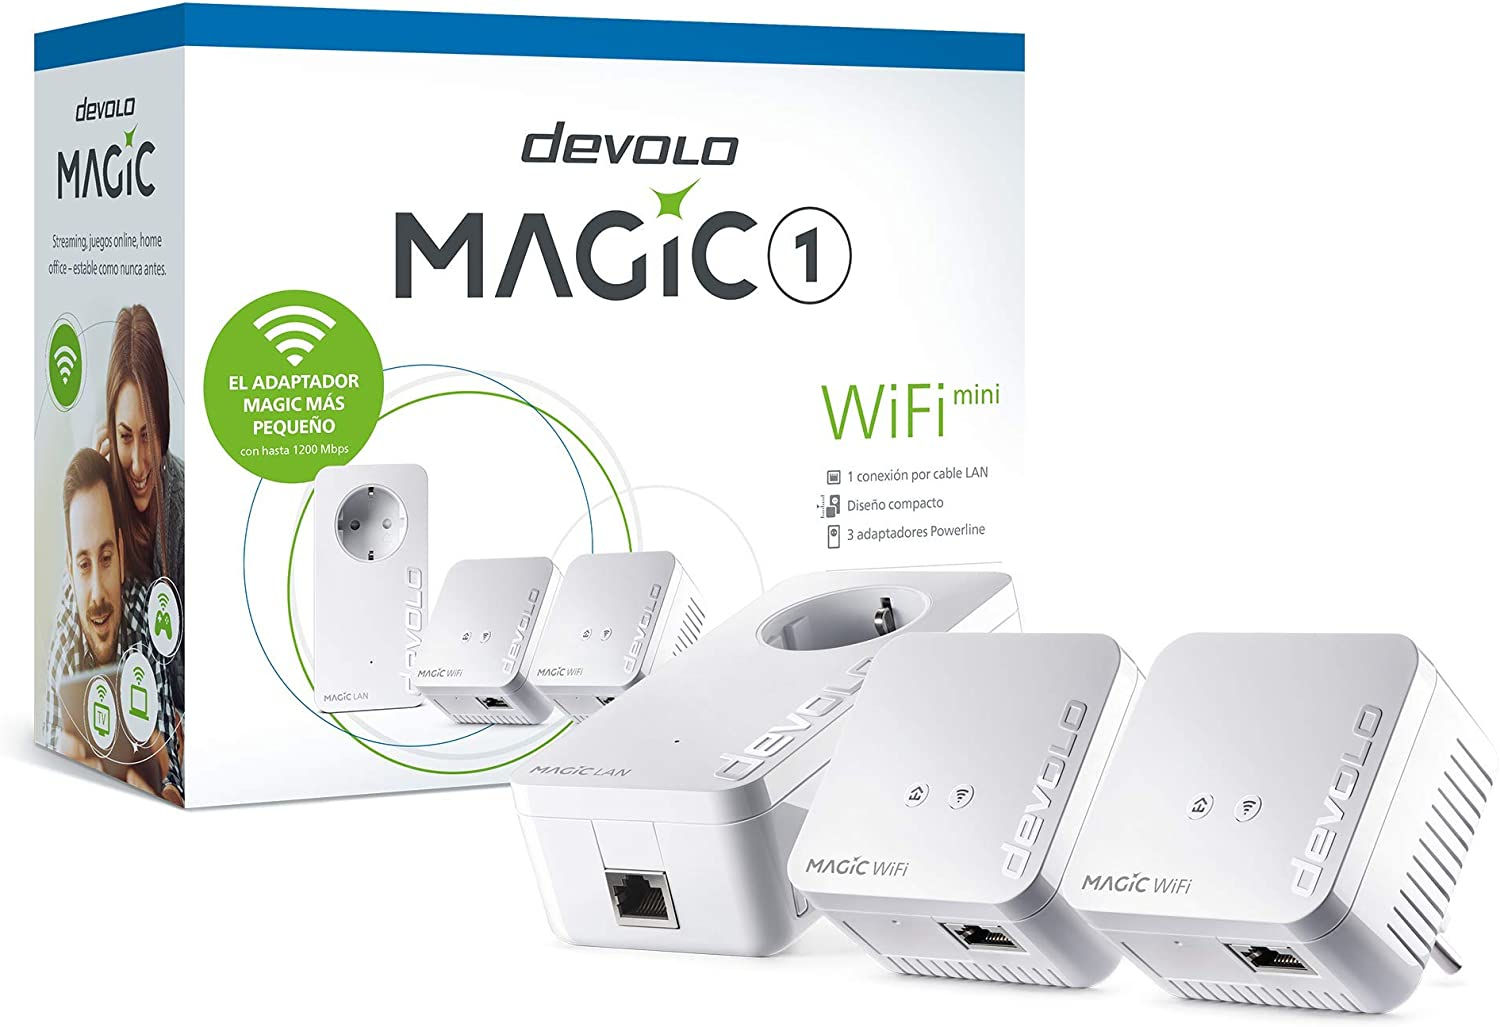 Devolo Magic 1 WiFi mini 8576